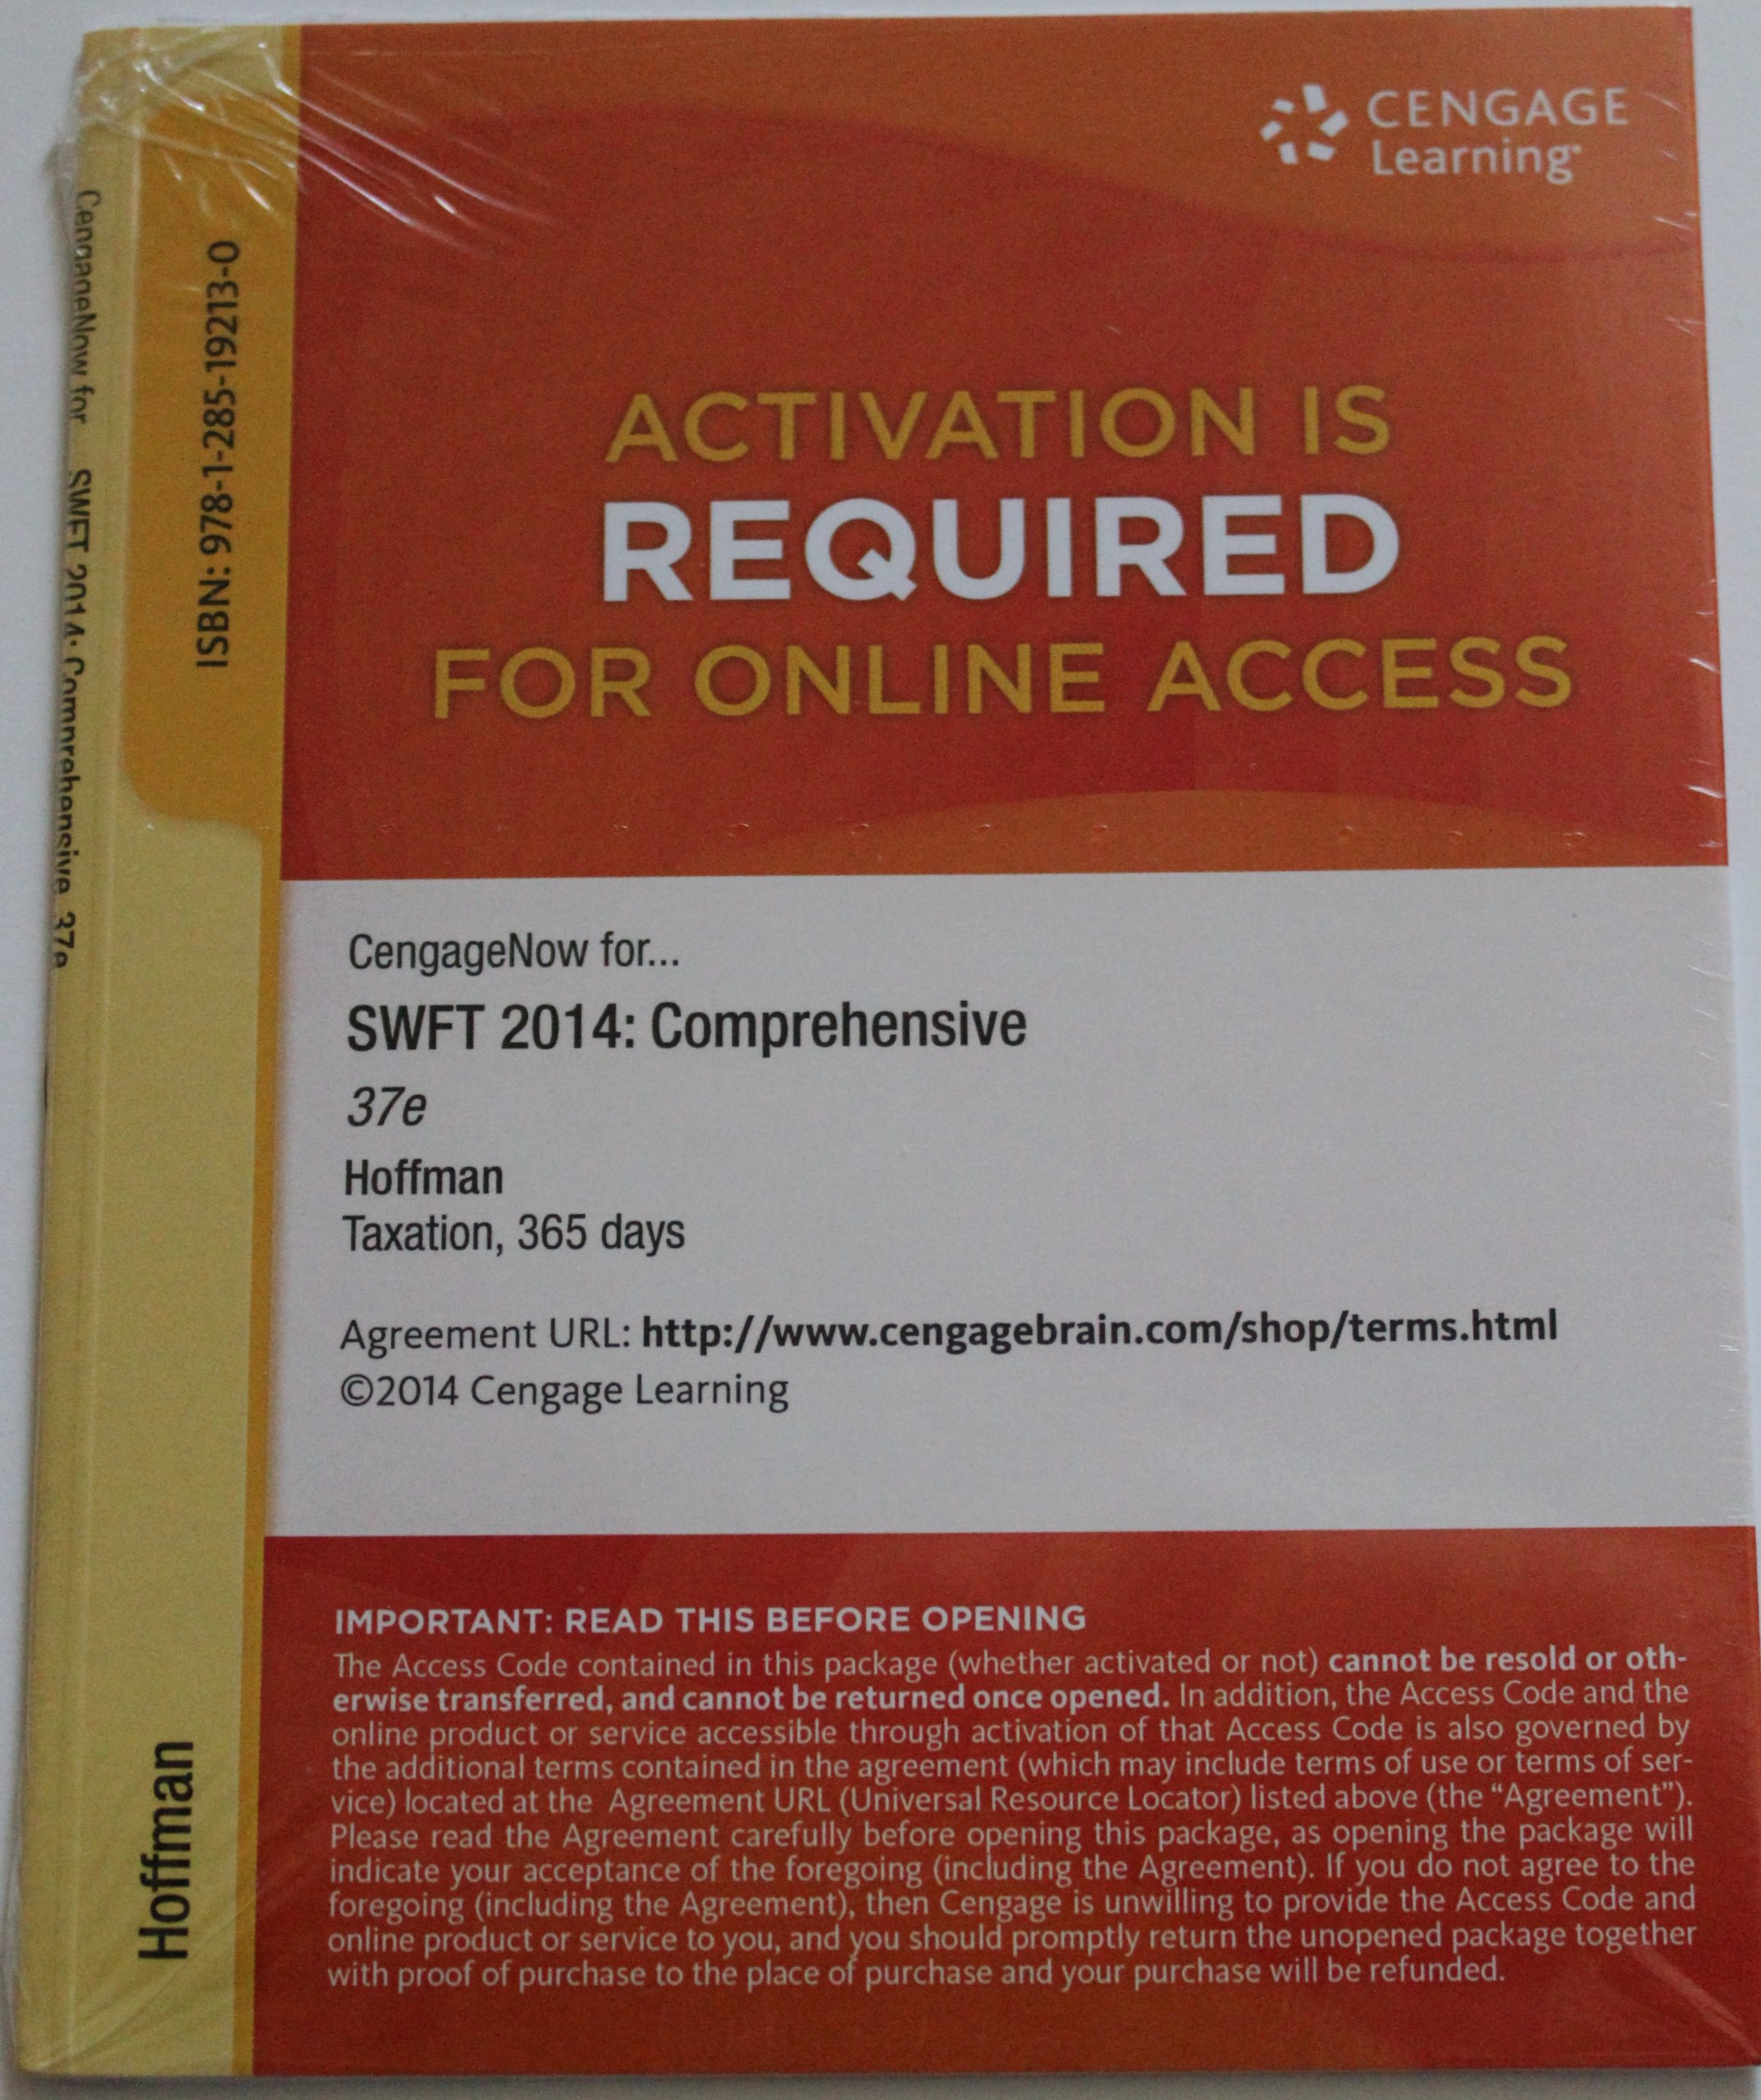 Read Online South-Western Federal Taxation 2014: Comprehensive, 37th Edition CengageNOW 2-Semester Instant Access for Hoffman/Maloney/Raabe/Young's Text fb2 book